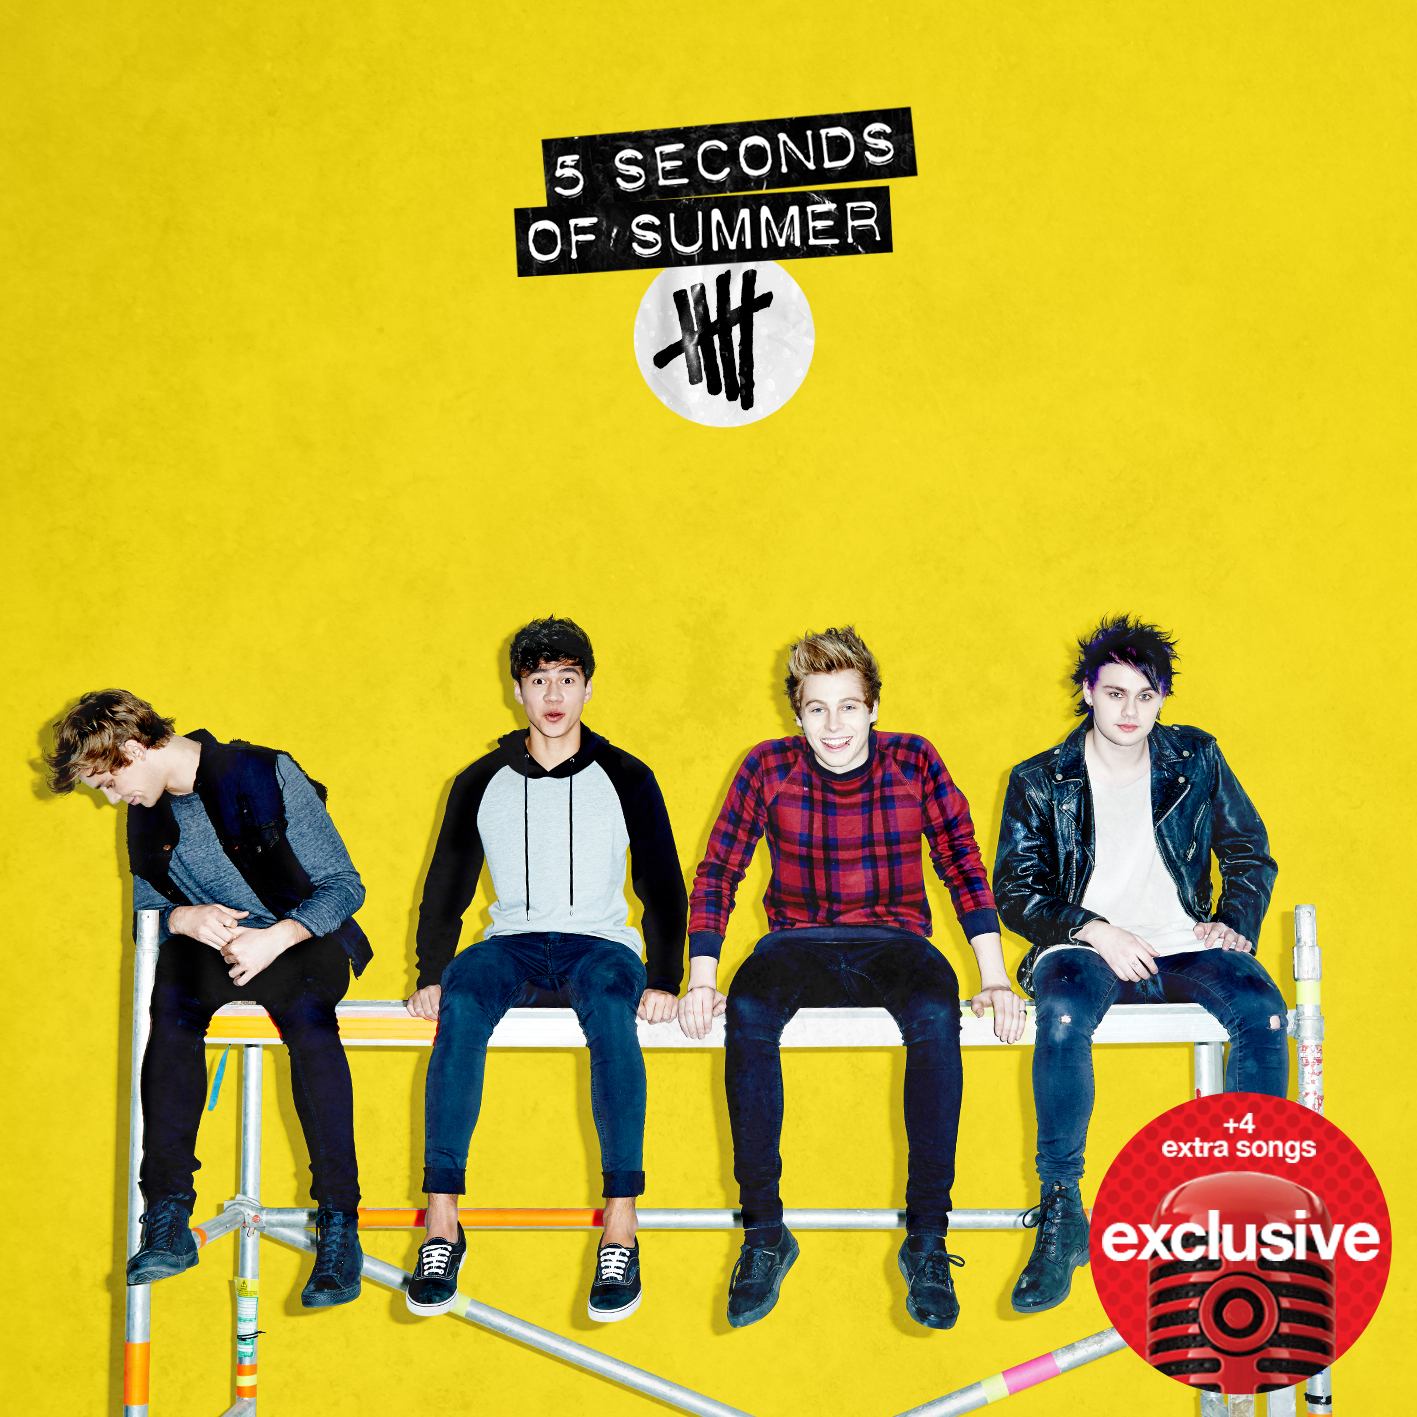 5 seconds of summer � out of my limit lyrics genius lyrics